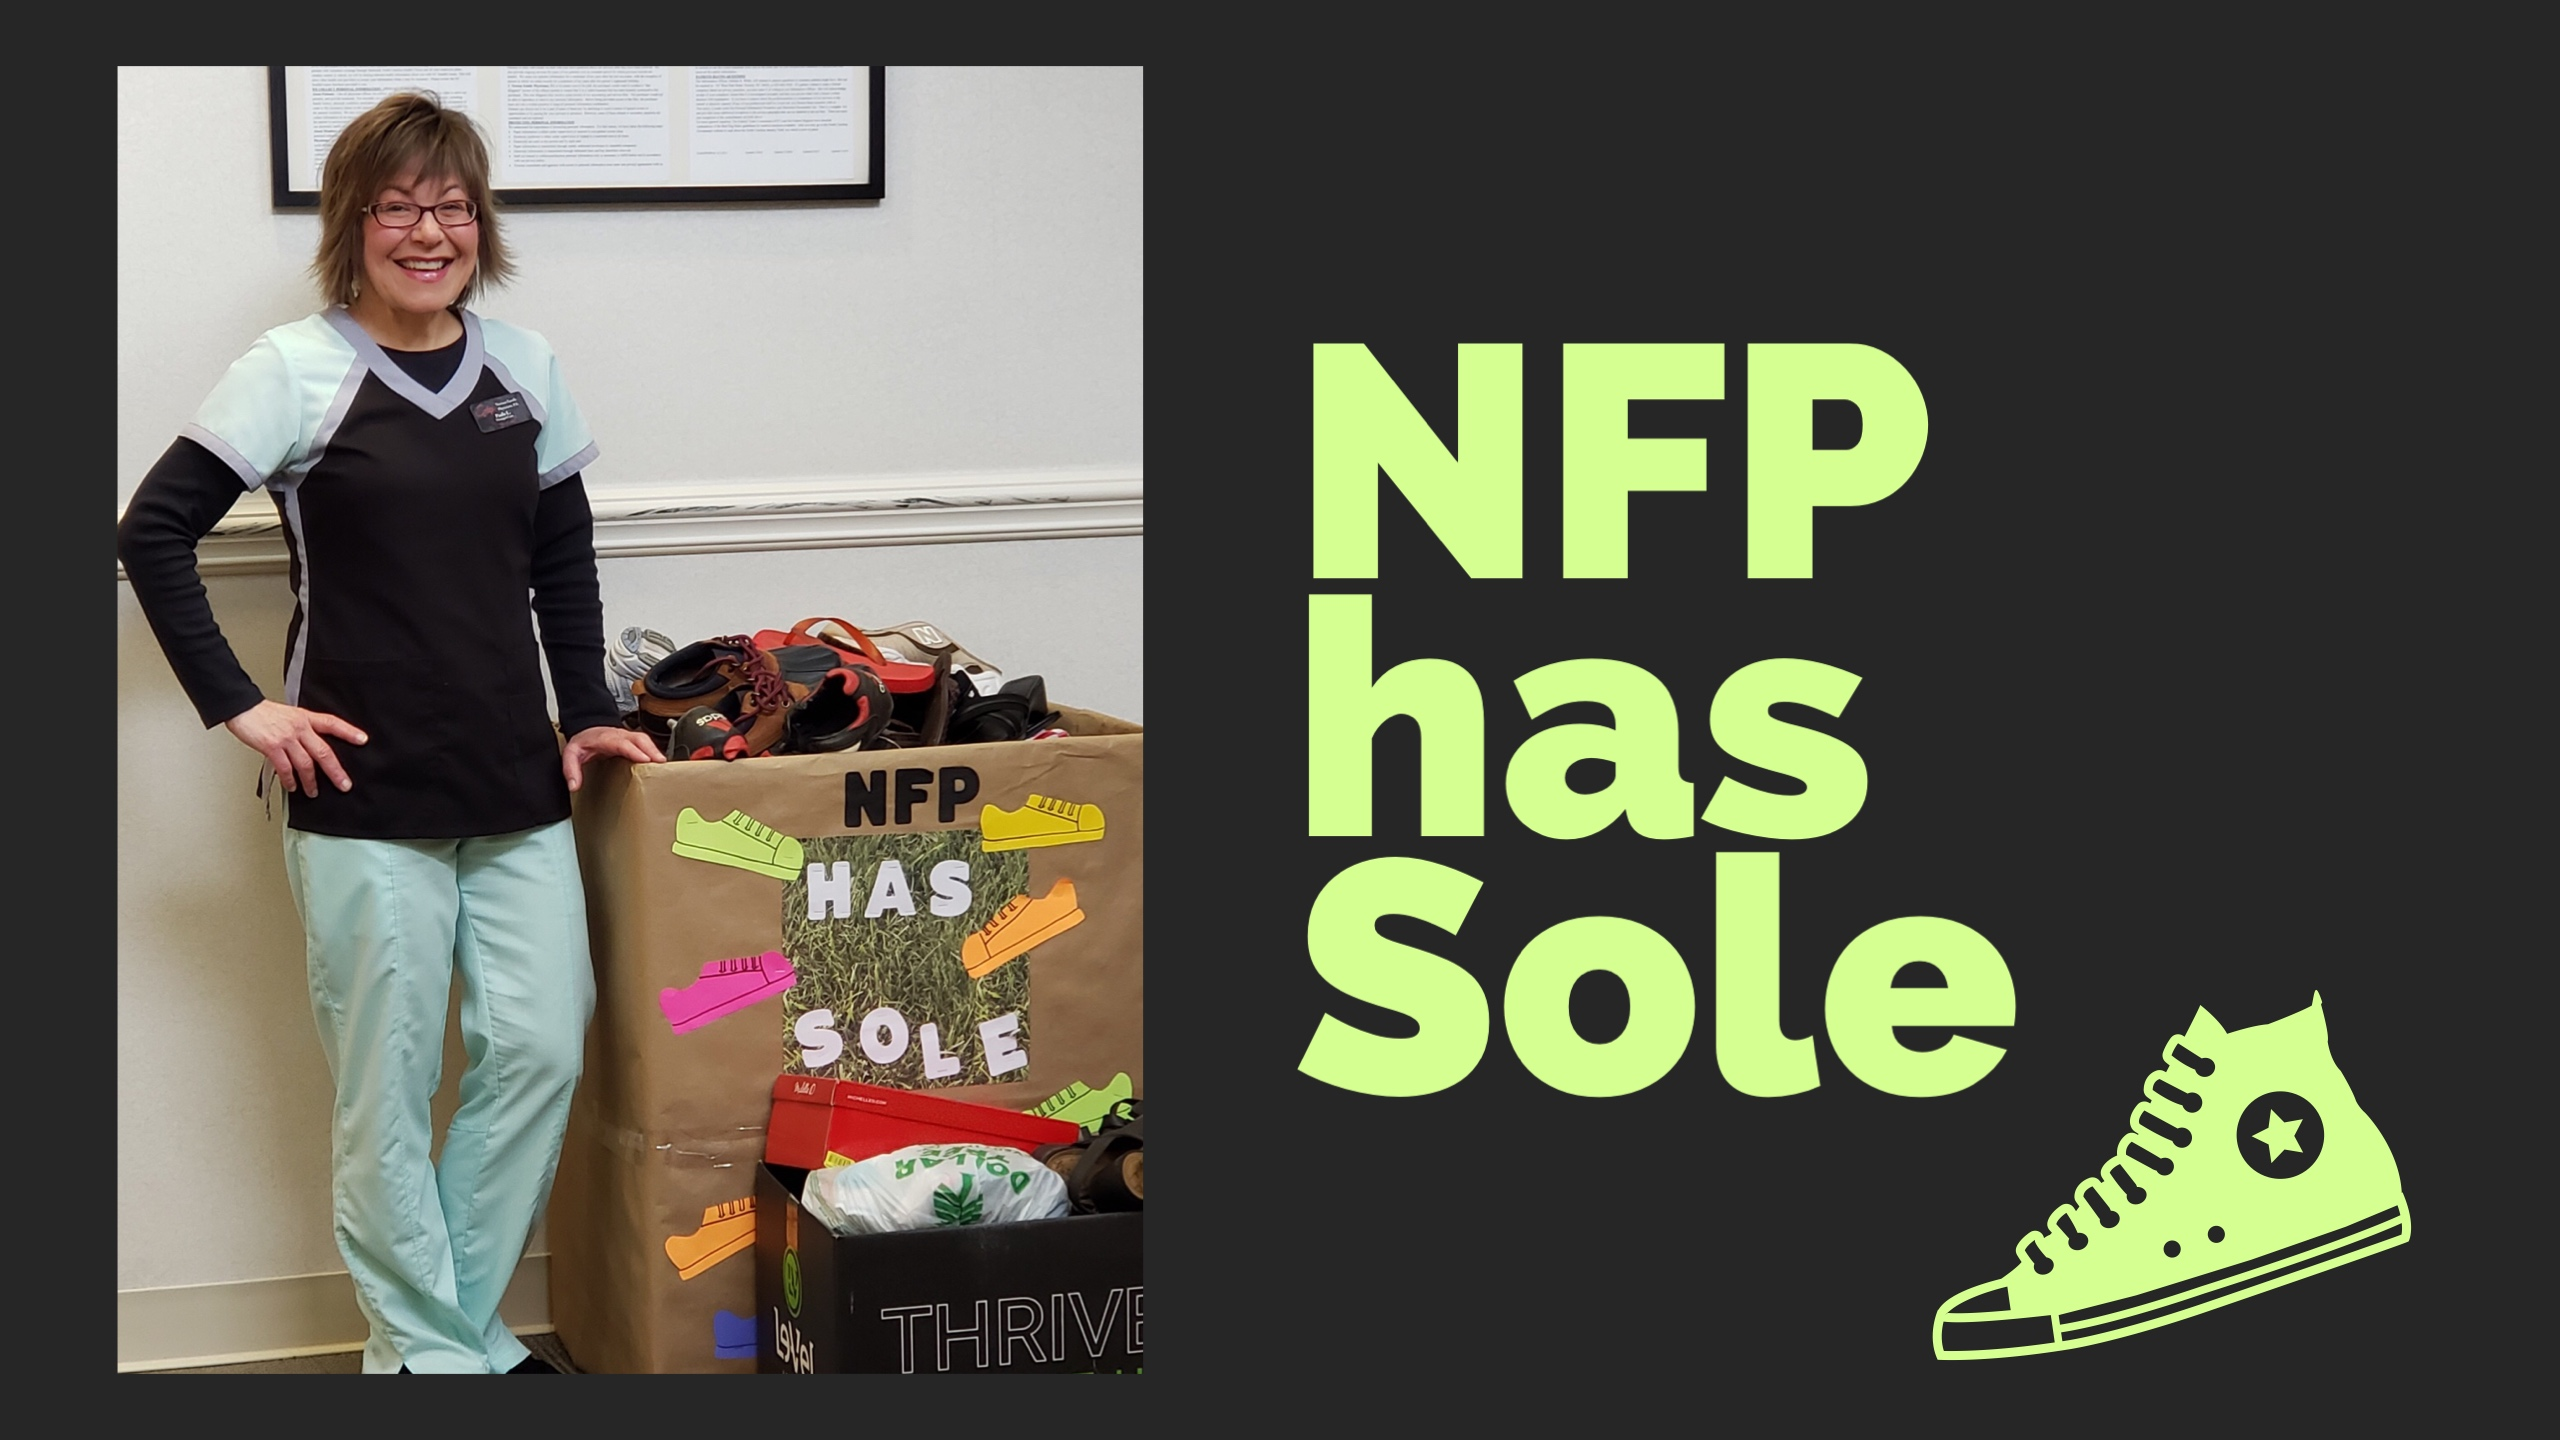 NFP HAS SOLE